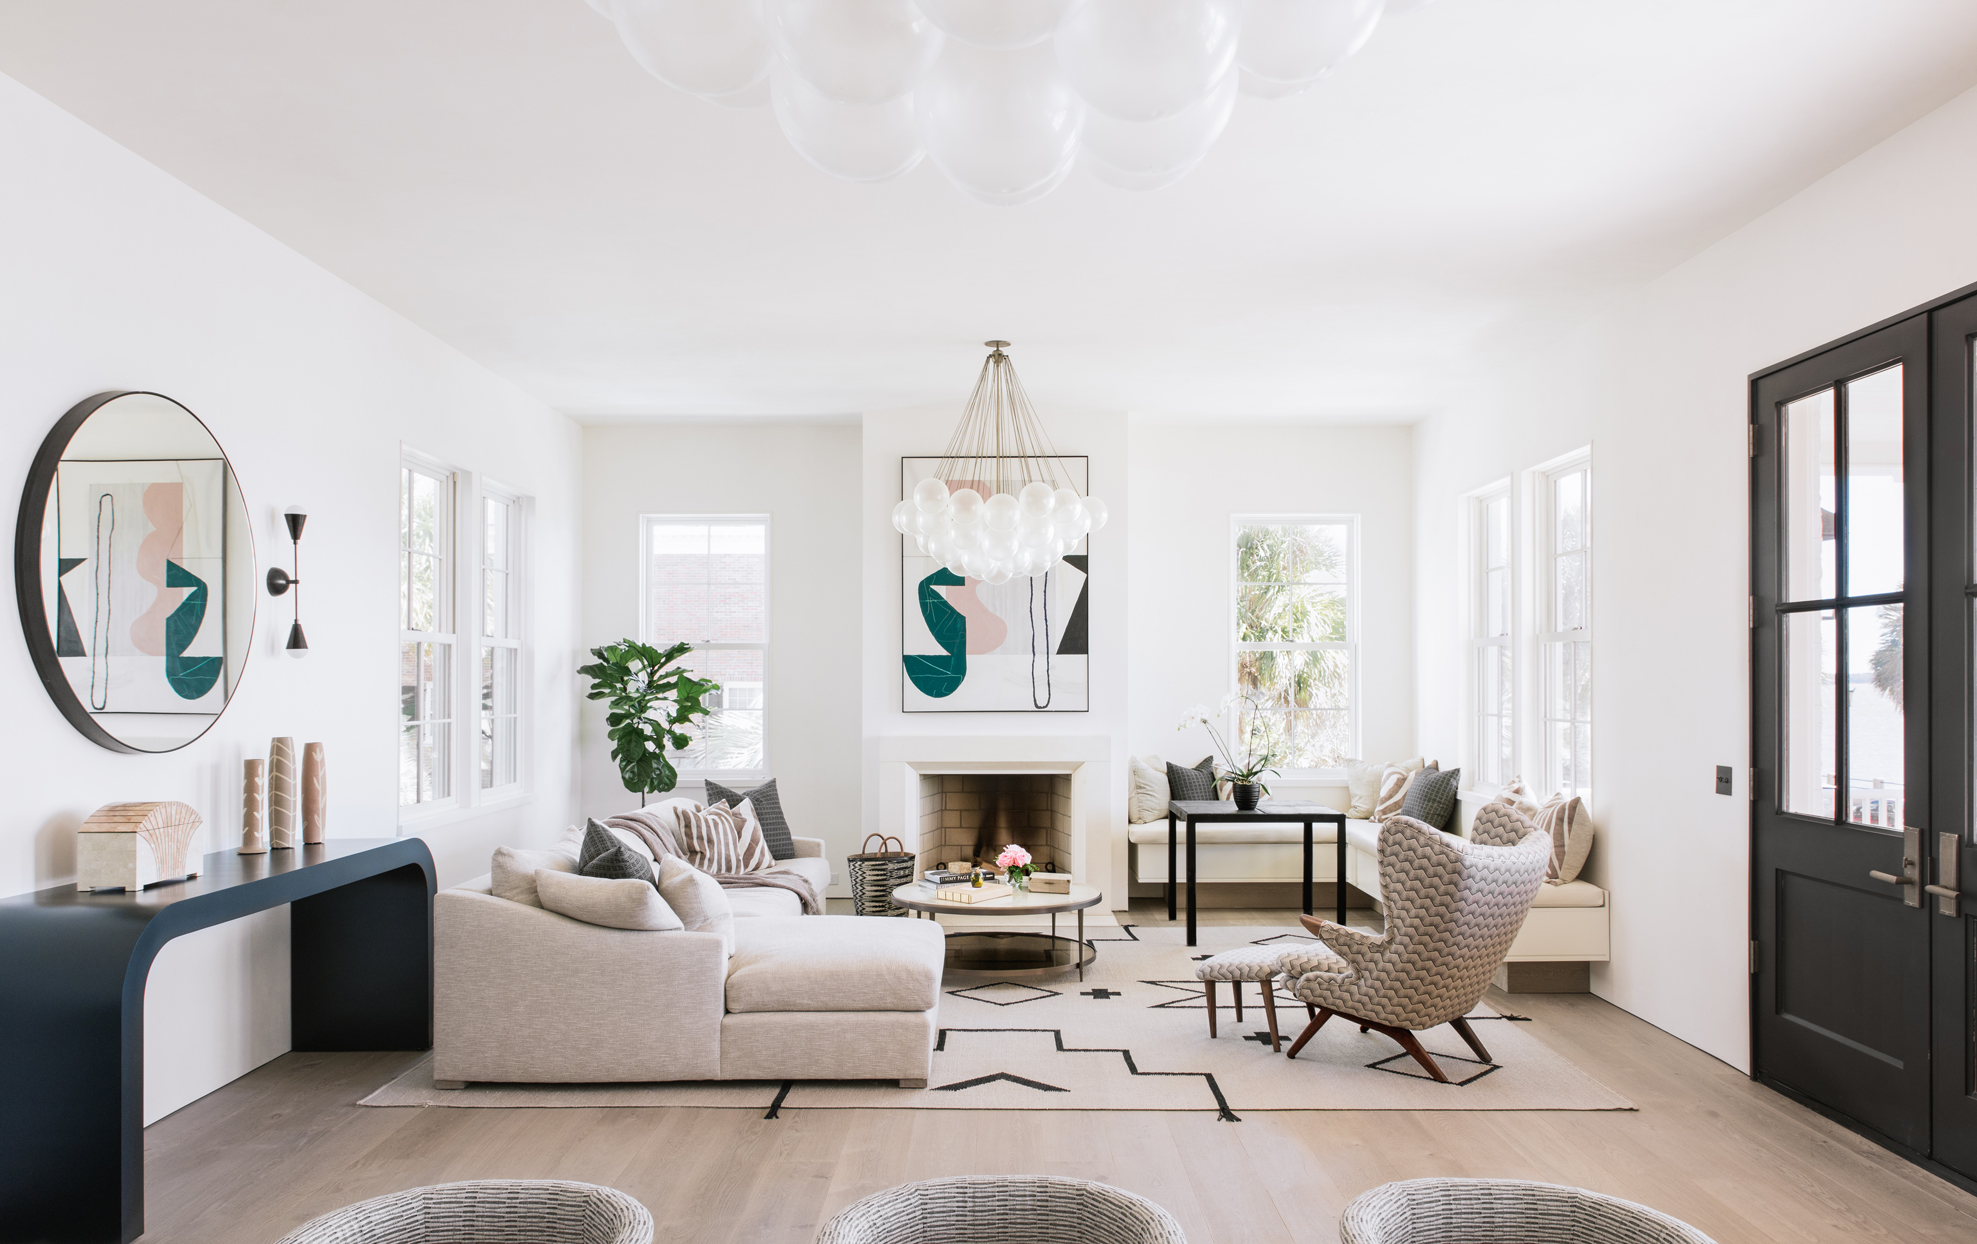 11 Living Room Decorating Ideas Every Homeowner Should Know Martha Stewart